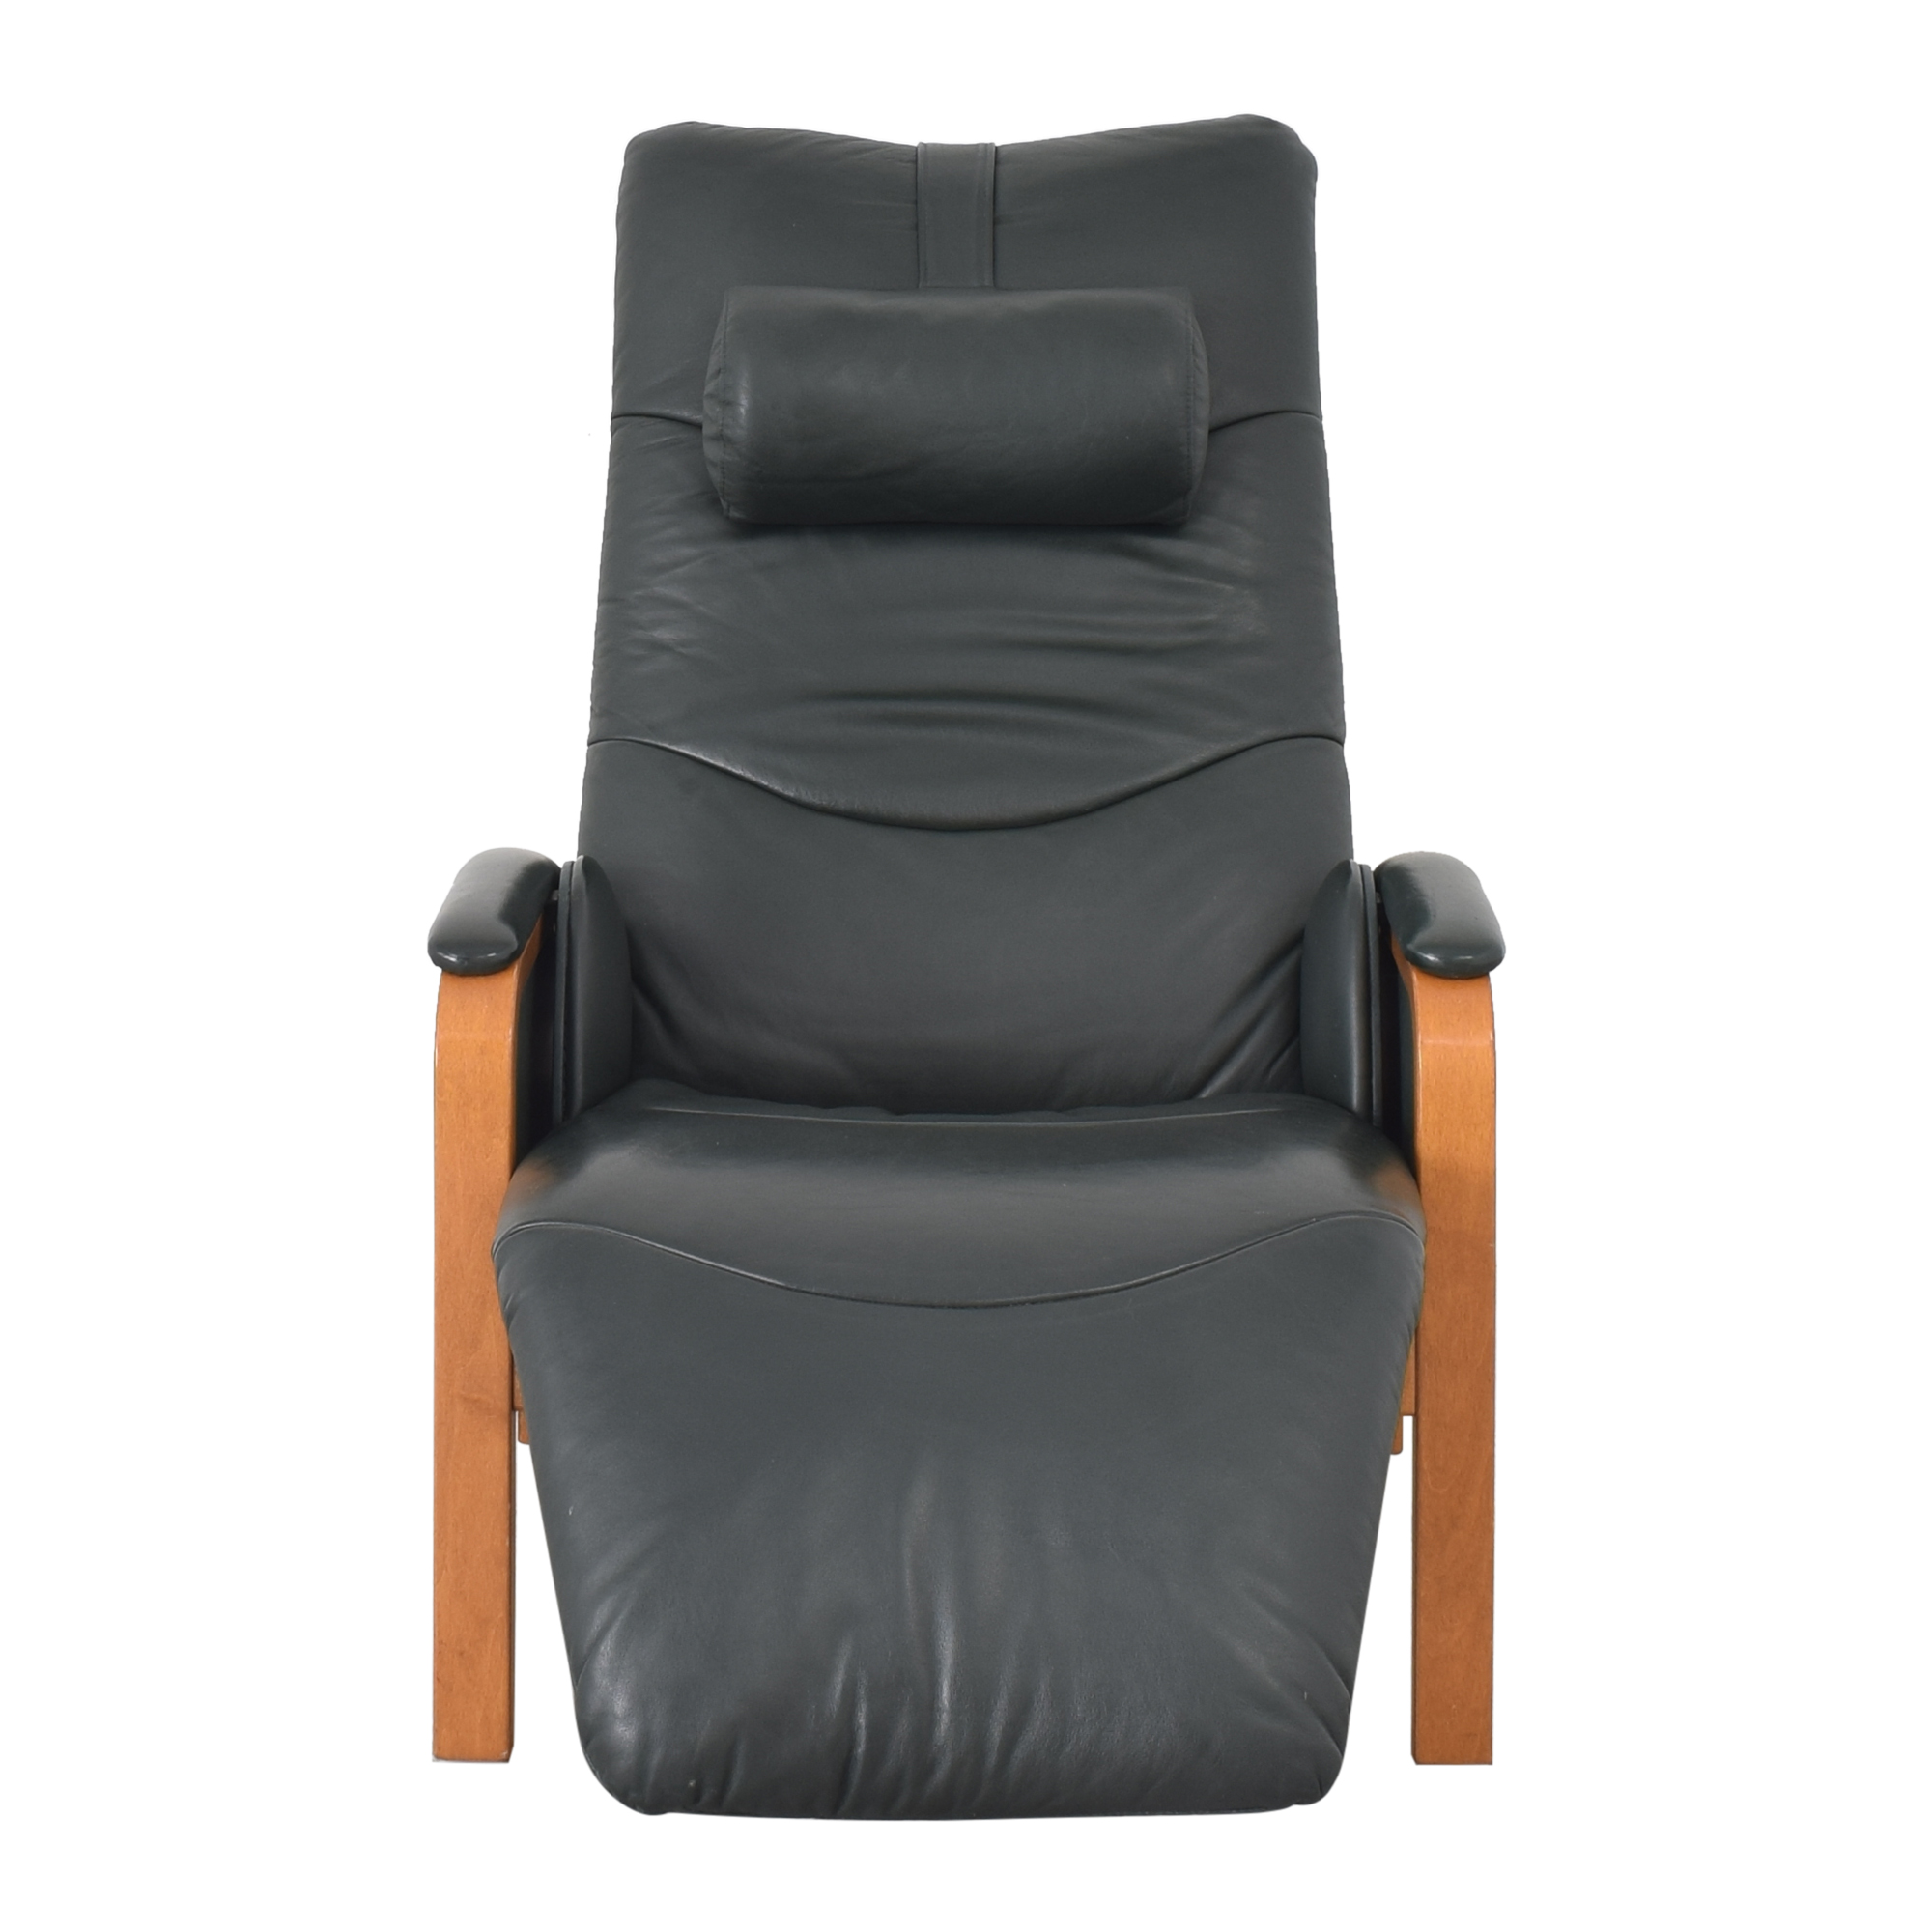 BackSaver BackSaver Zero Gravity Chair used